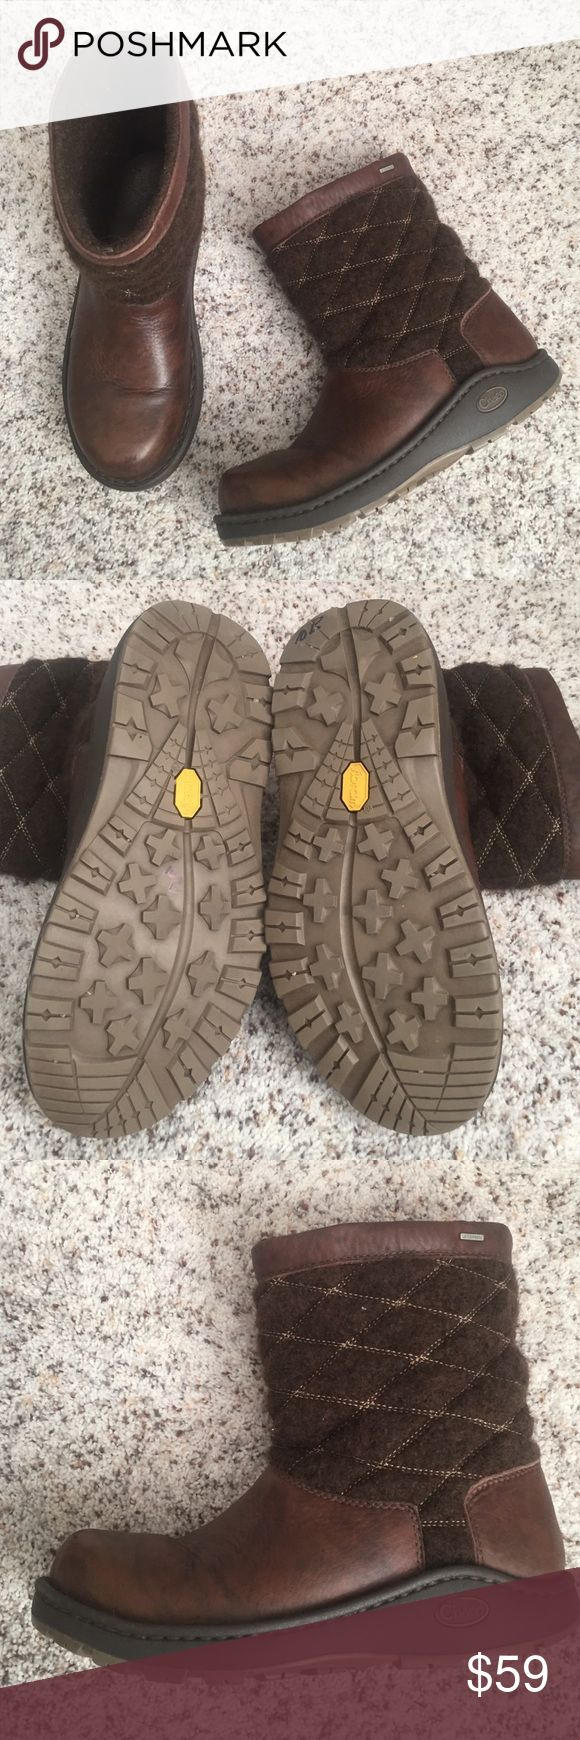 Chaco boots Arbors wool, waterproof boots. Great condition and super comfortable. Chaco Shoes Winter & Rain Boots